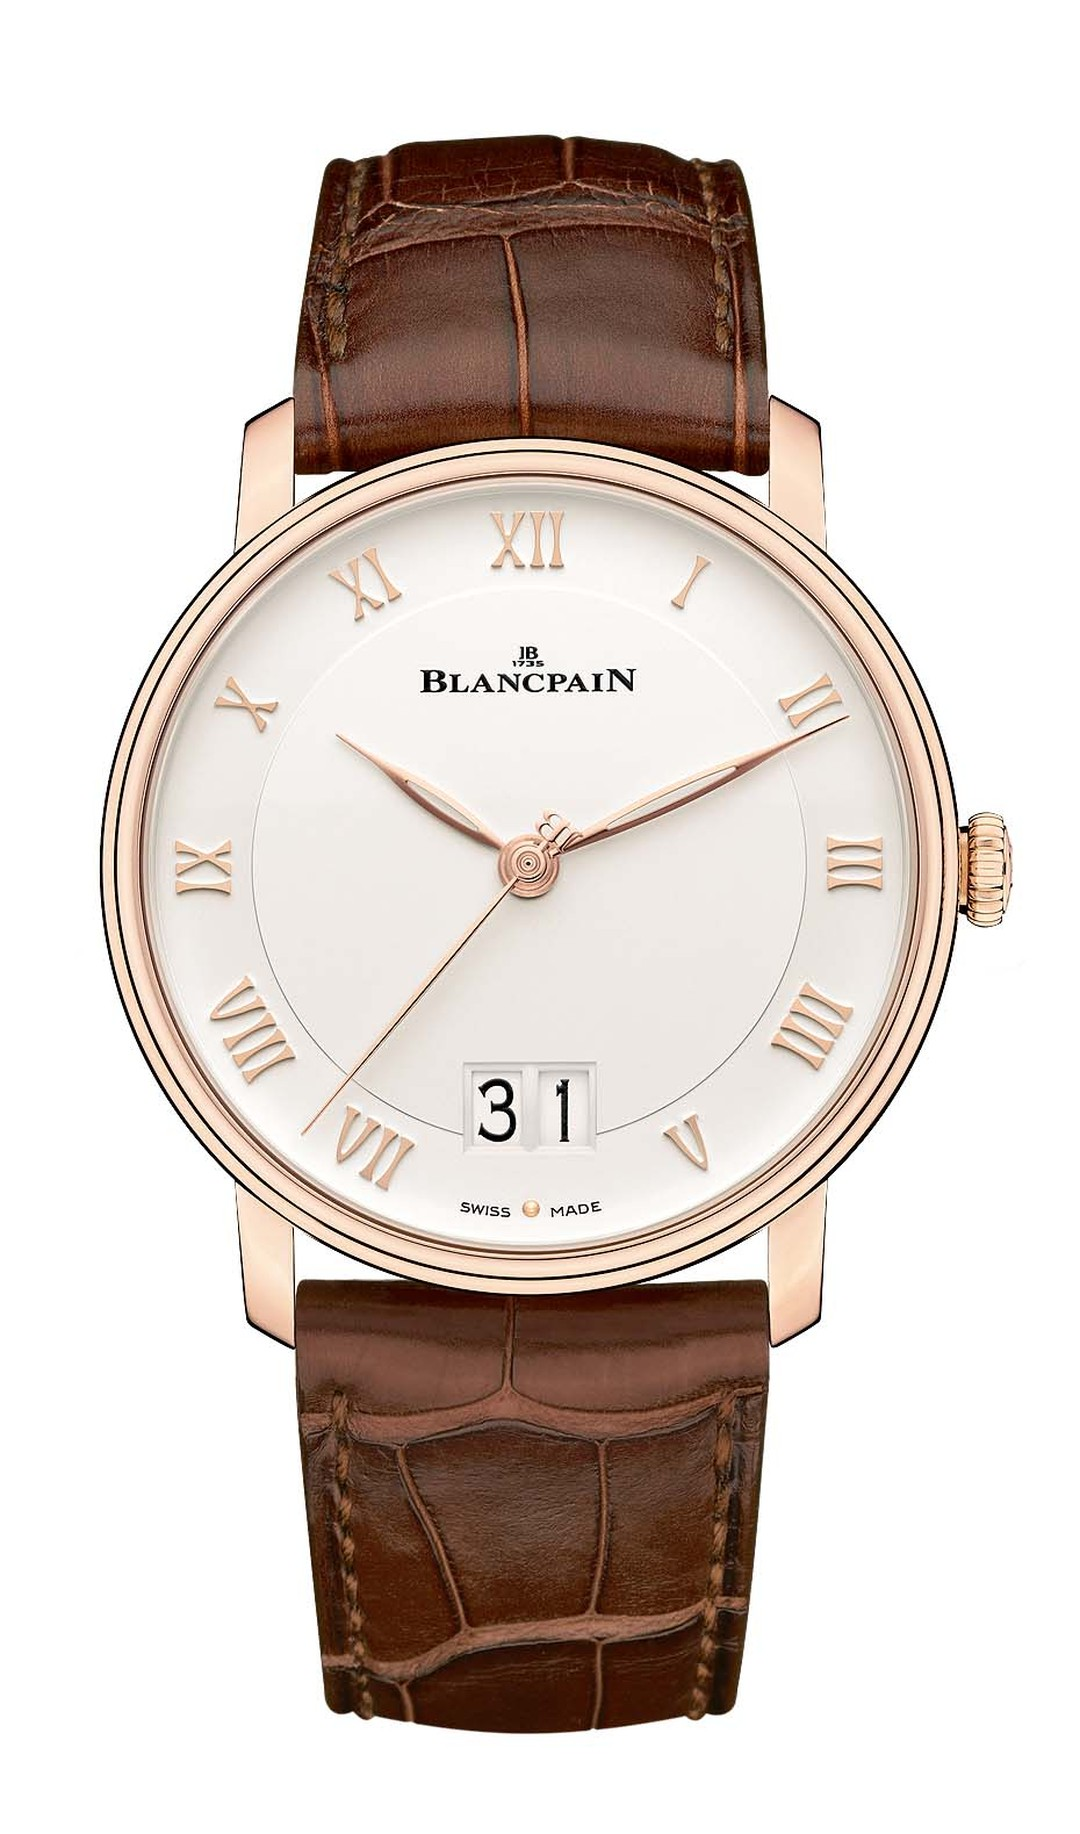 Blancpain watches revisits its Villeret Grande Date model this year with a large double date window at 6 o'clock for enhanced legibility. This elegant men's dress watch is presented in a 40mm rose gold case with applied Roman numerals.